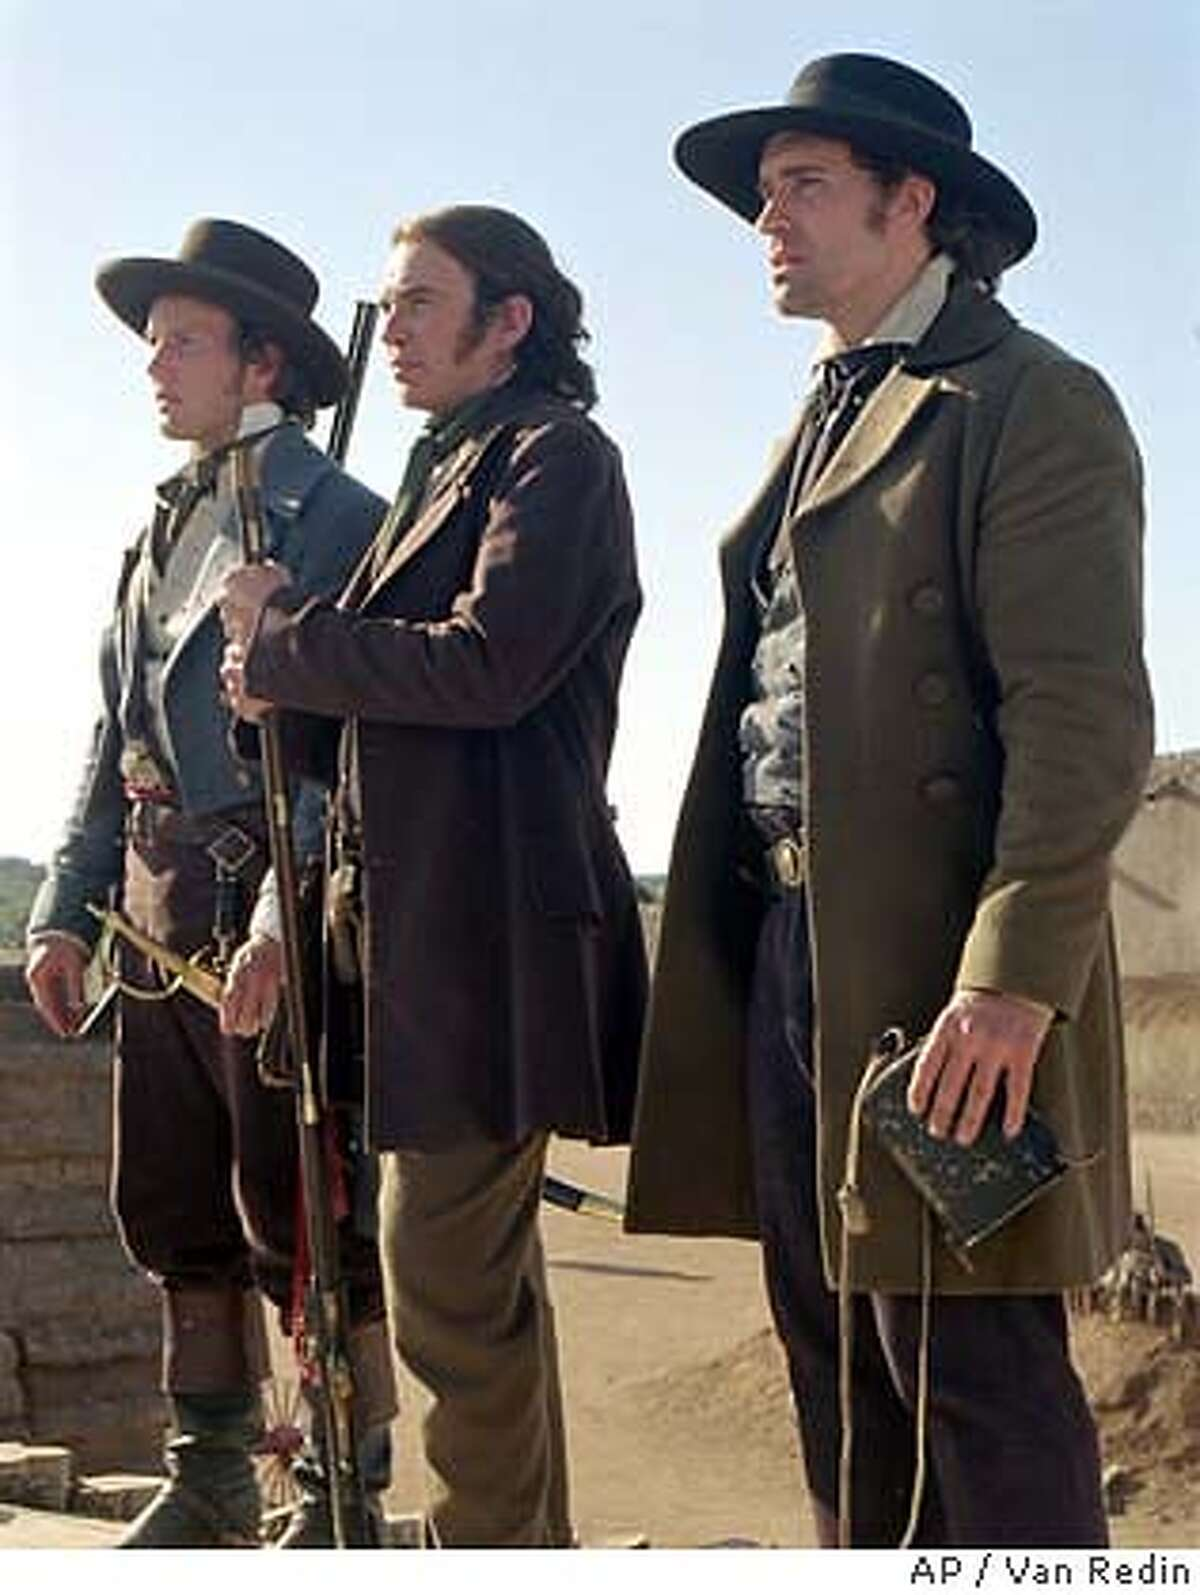 """Lt. Col. William Travis (Patrick Wilson, left), Davy Crockett (Billy Bob Thornton,center) and James Bowie (Jason Patric, right) lead the Texians into the Alamo and into history in """"The Alamo."""" (AP Photo/Van Redin)"""